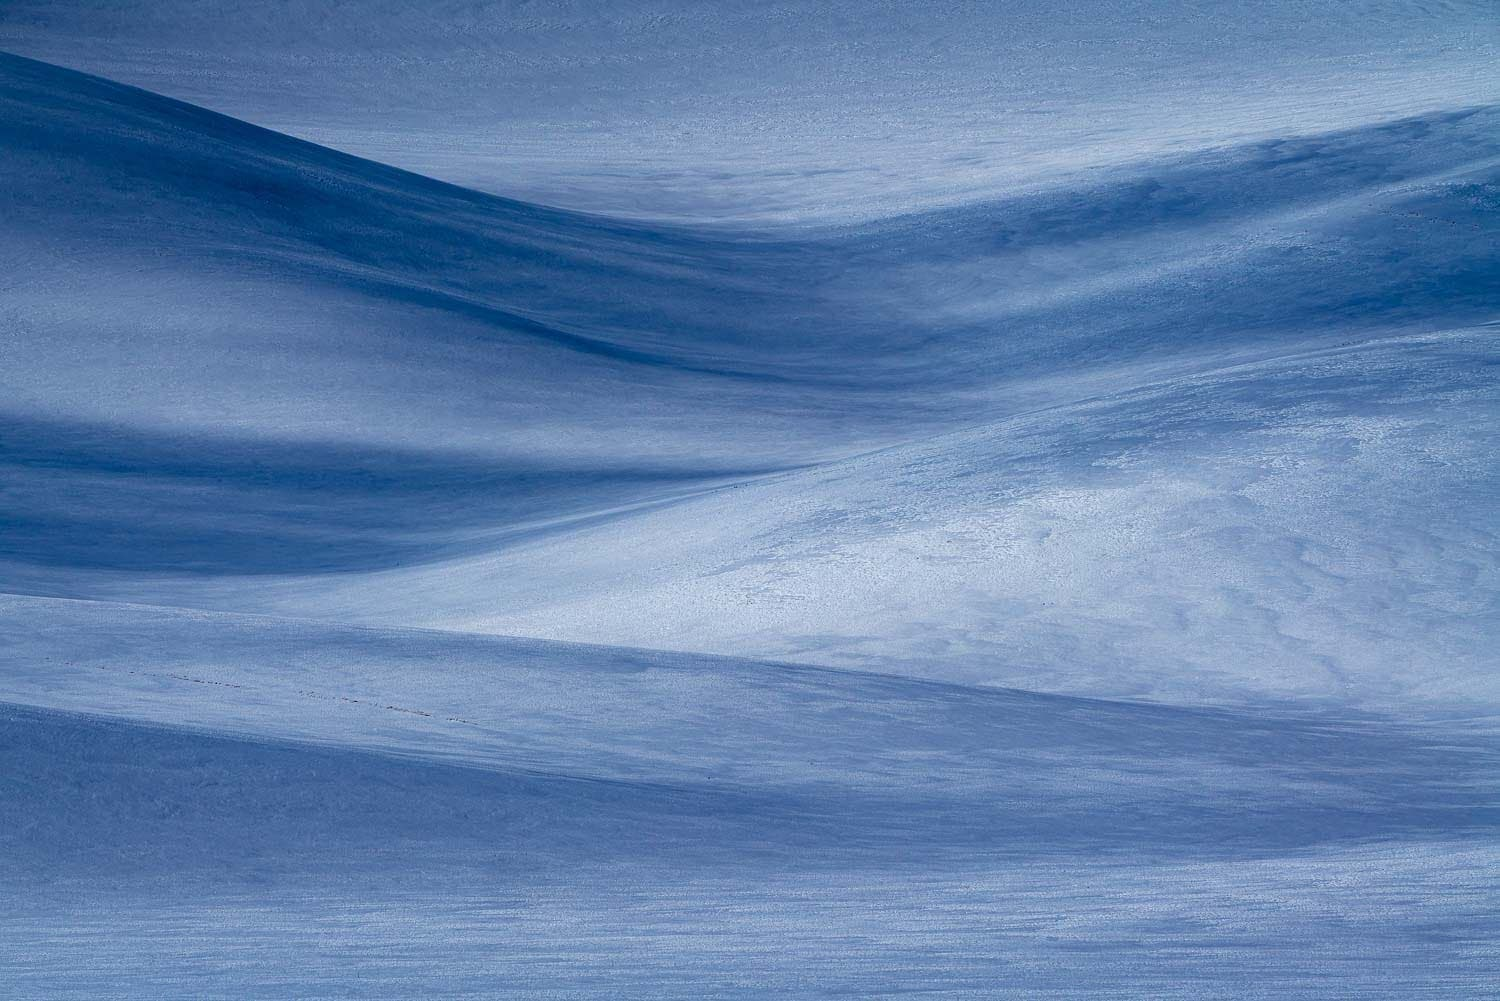 Snow drifts over rolling hills with blue hue